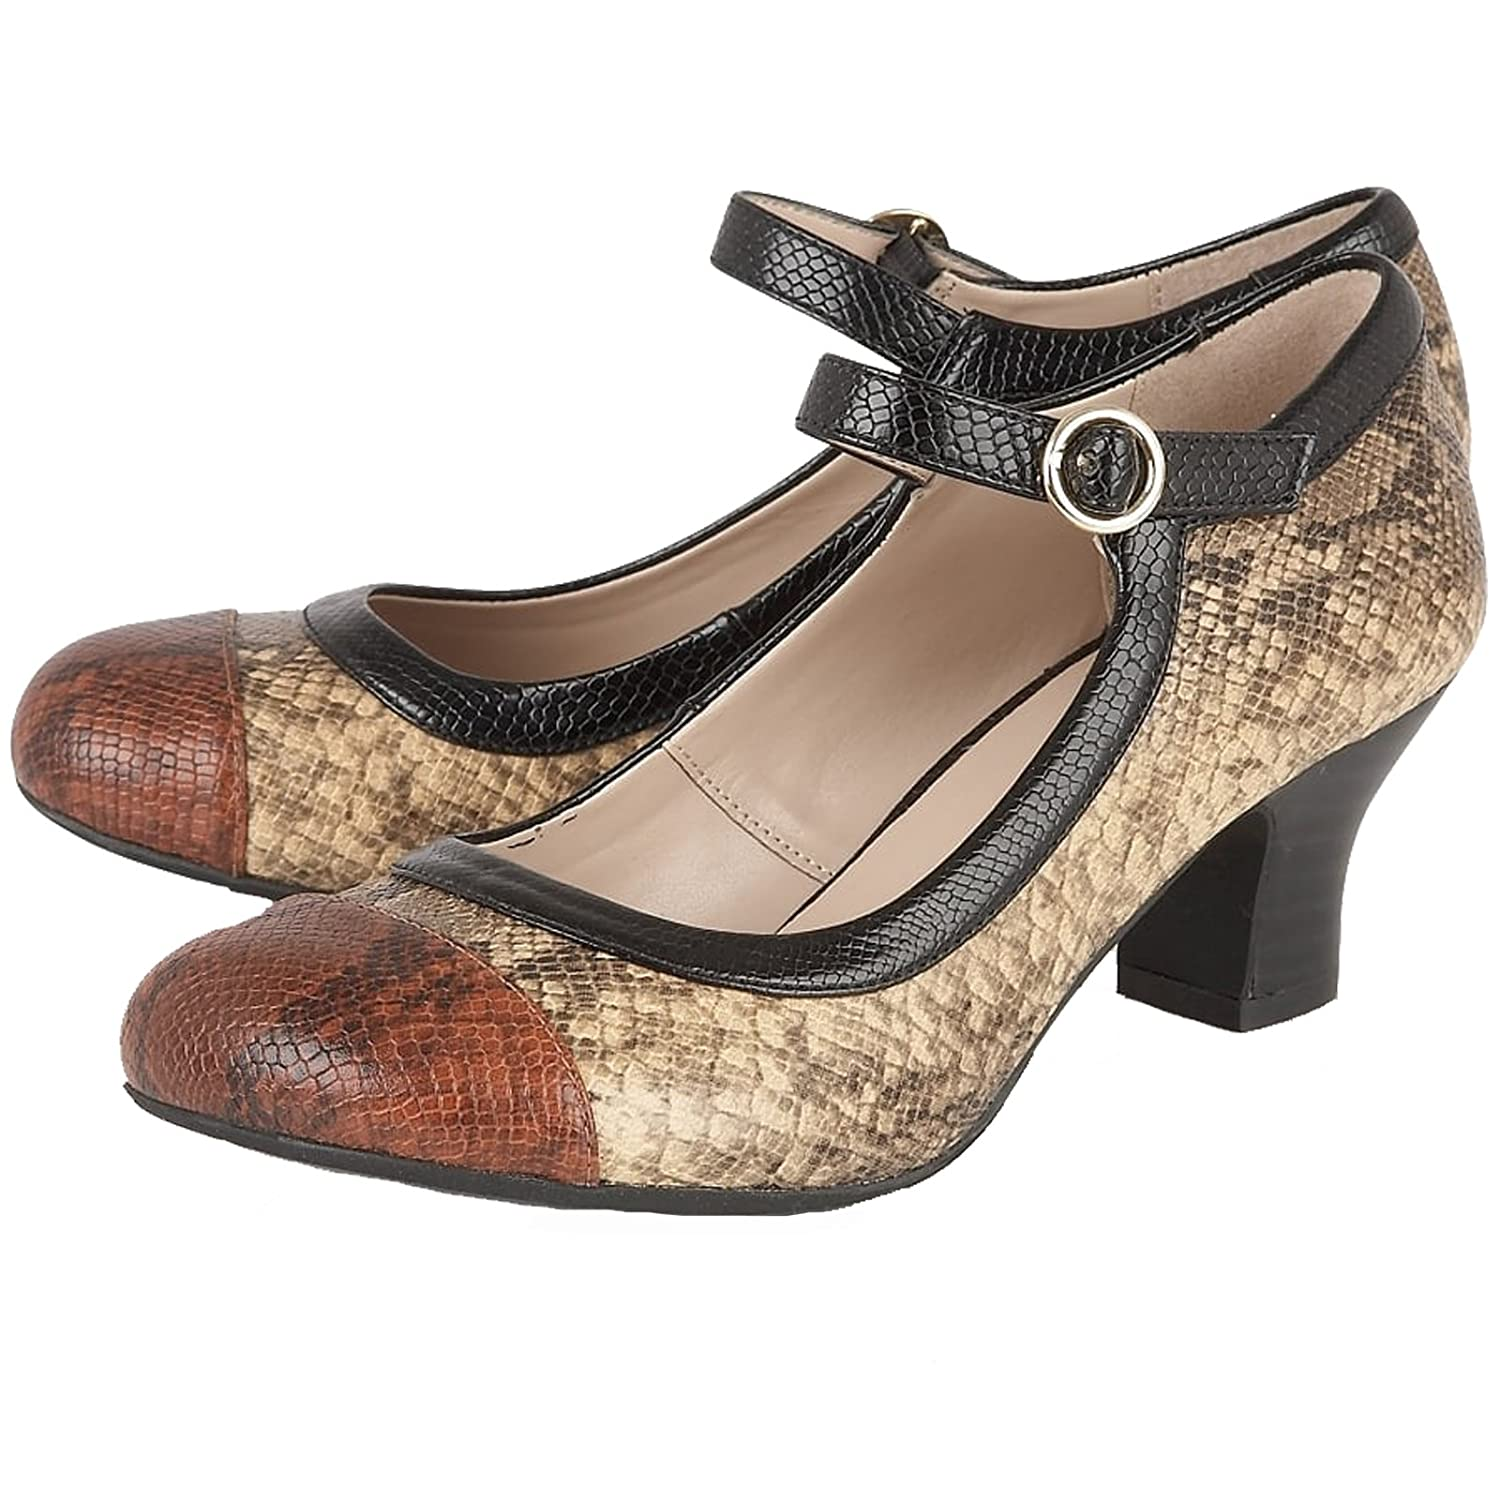 Lotus Ladies Hallmark ORNICE Braun 1920s Snake Print 1920s Braun 1930s Mary Jane Schuhes -UK 5 (EU 38) - 41b550